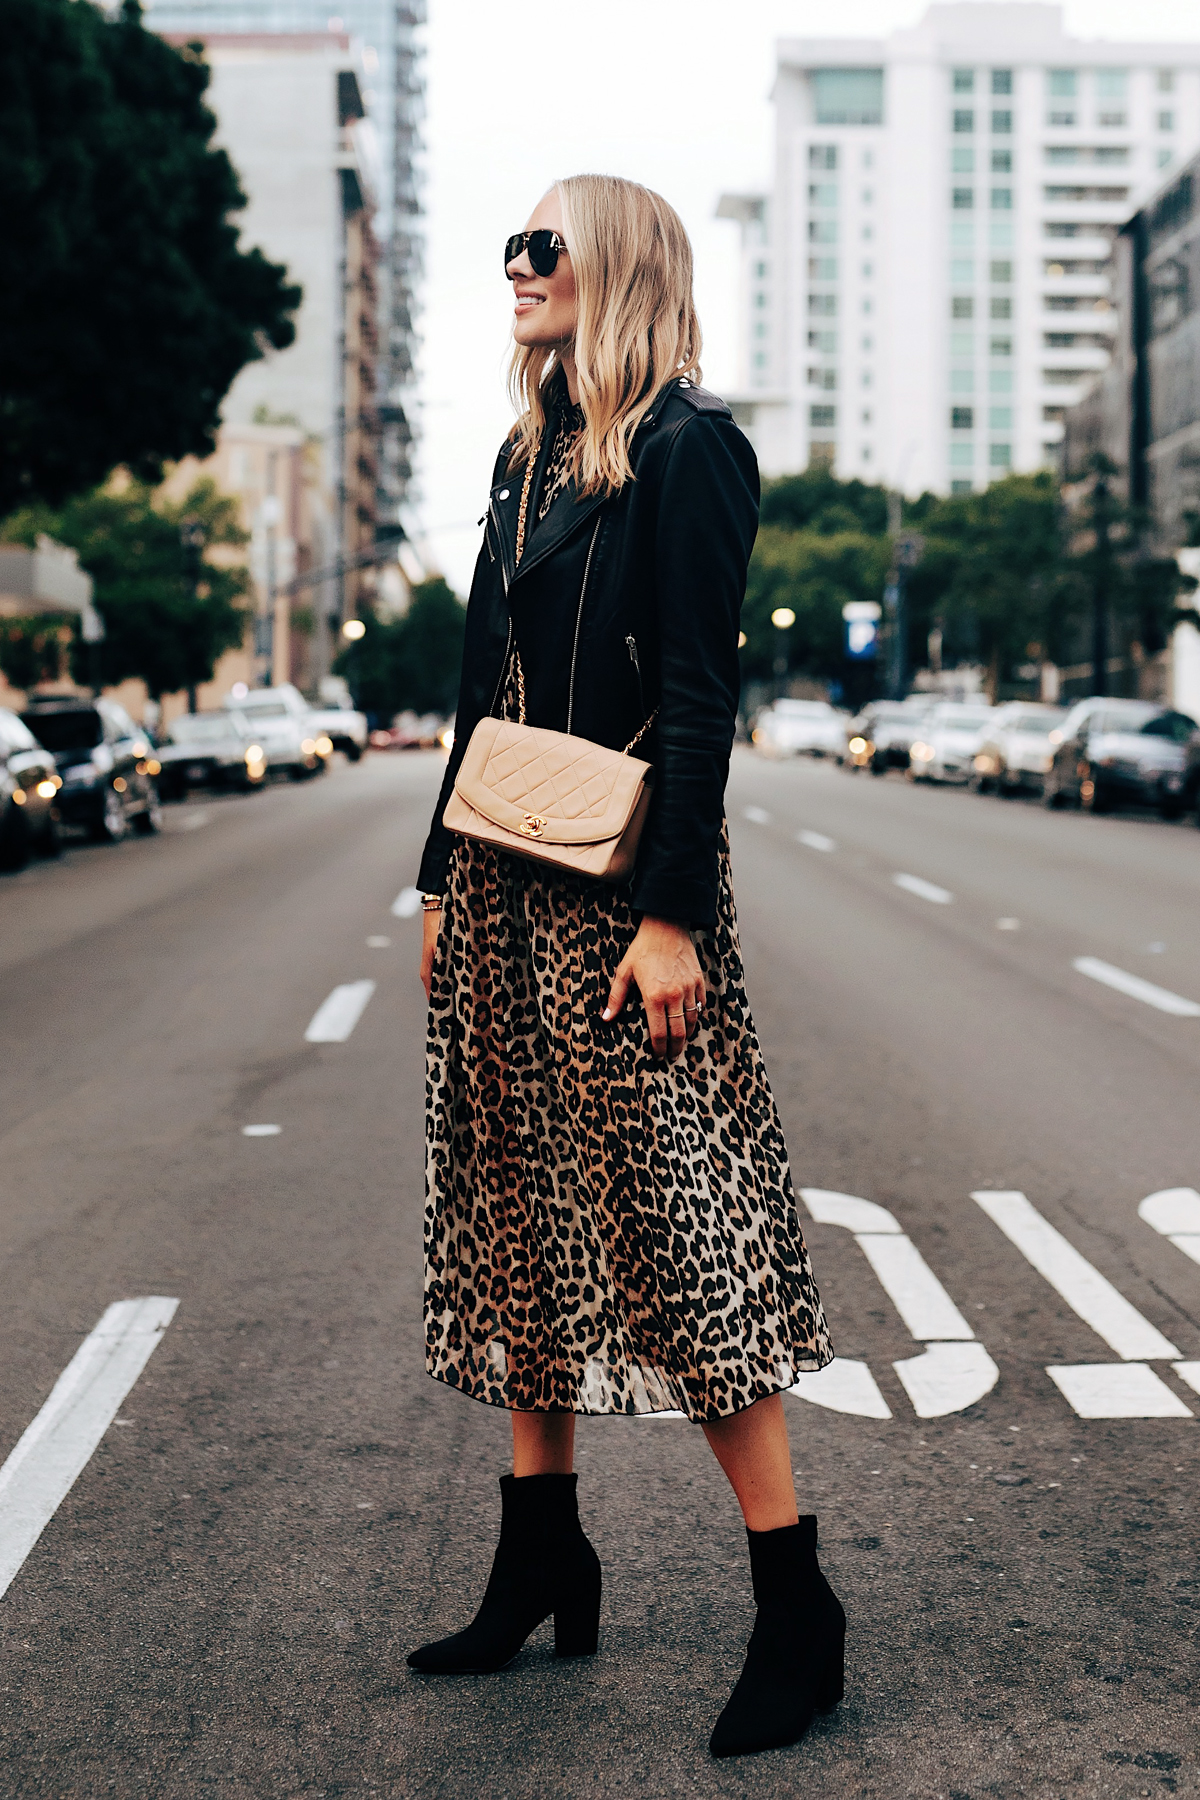 Fashion Jackson Ganni Leopard Midi Dress Club Monaco Black Leather Jacket Black Booties Tan Chanel Handbag